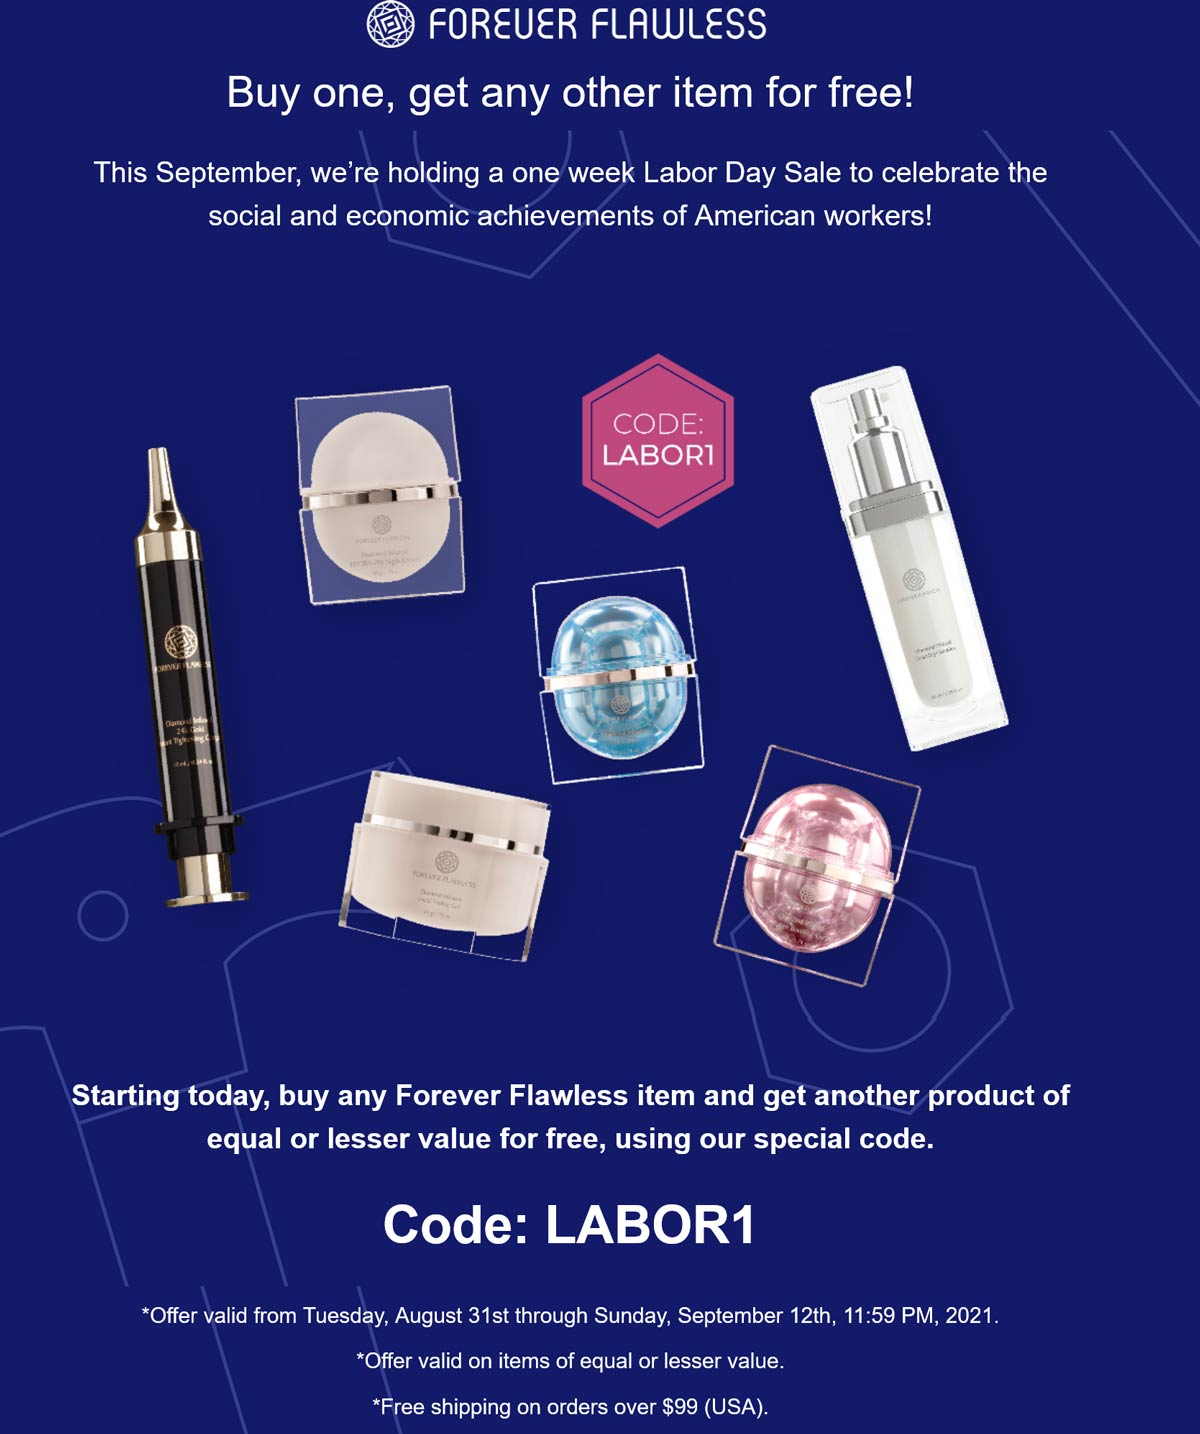 Forever Flawless stores Coupon  Second item free at Forever Flawless via promo code LABOR1 #foreverflawless